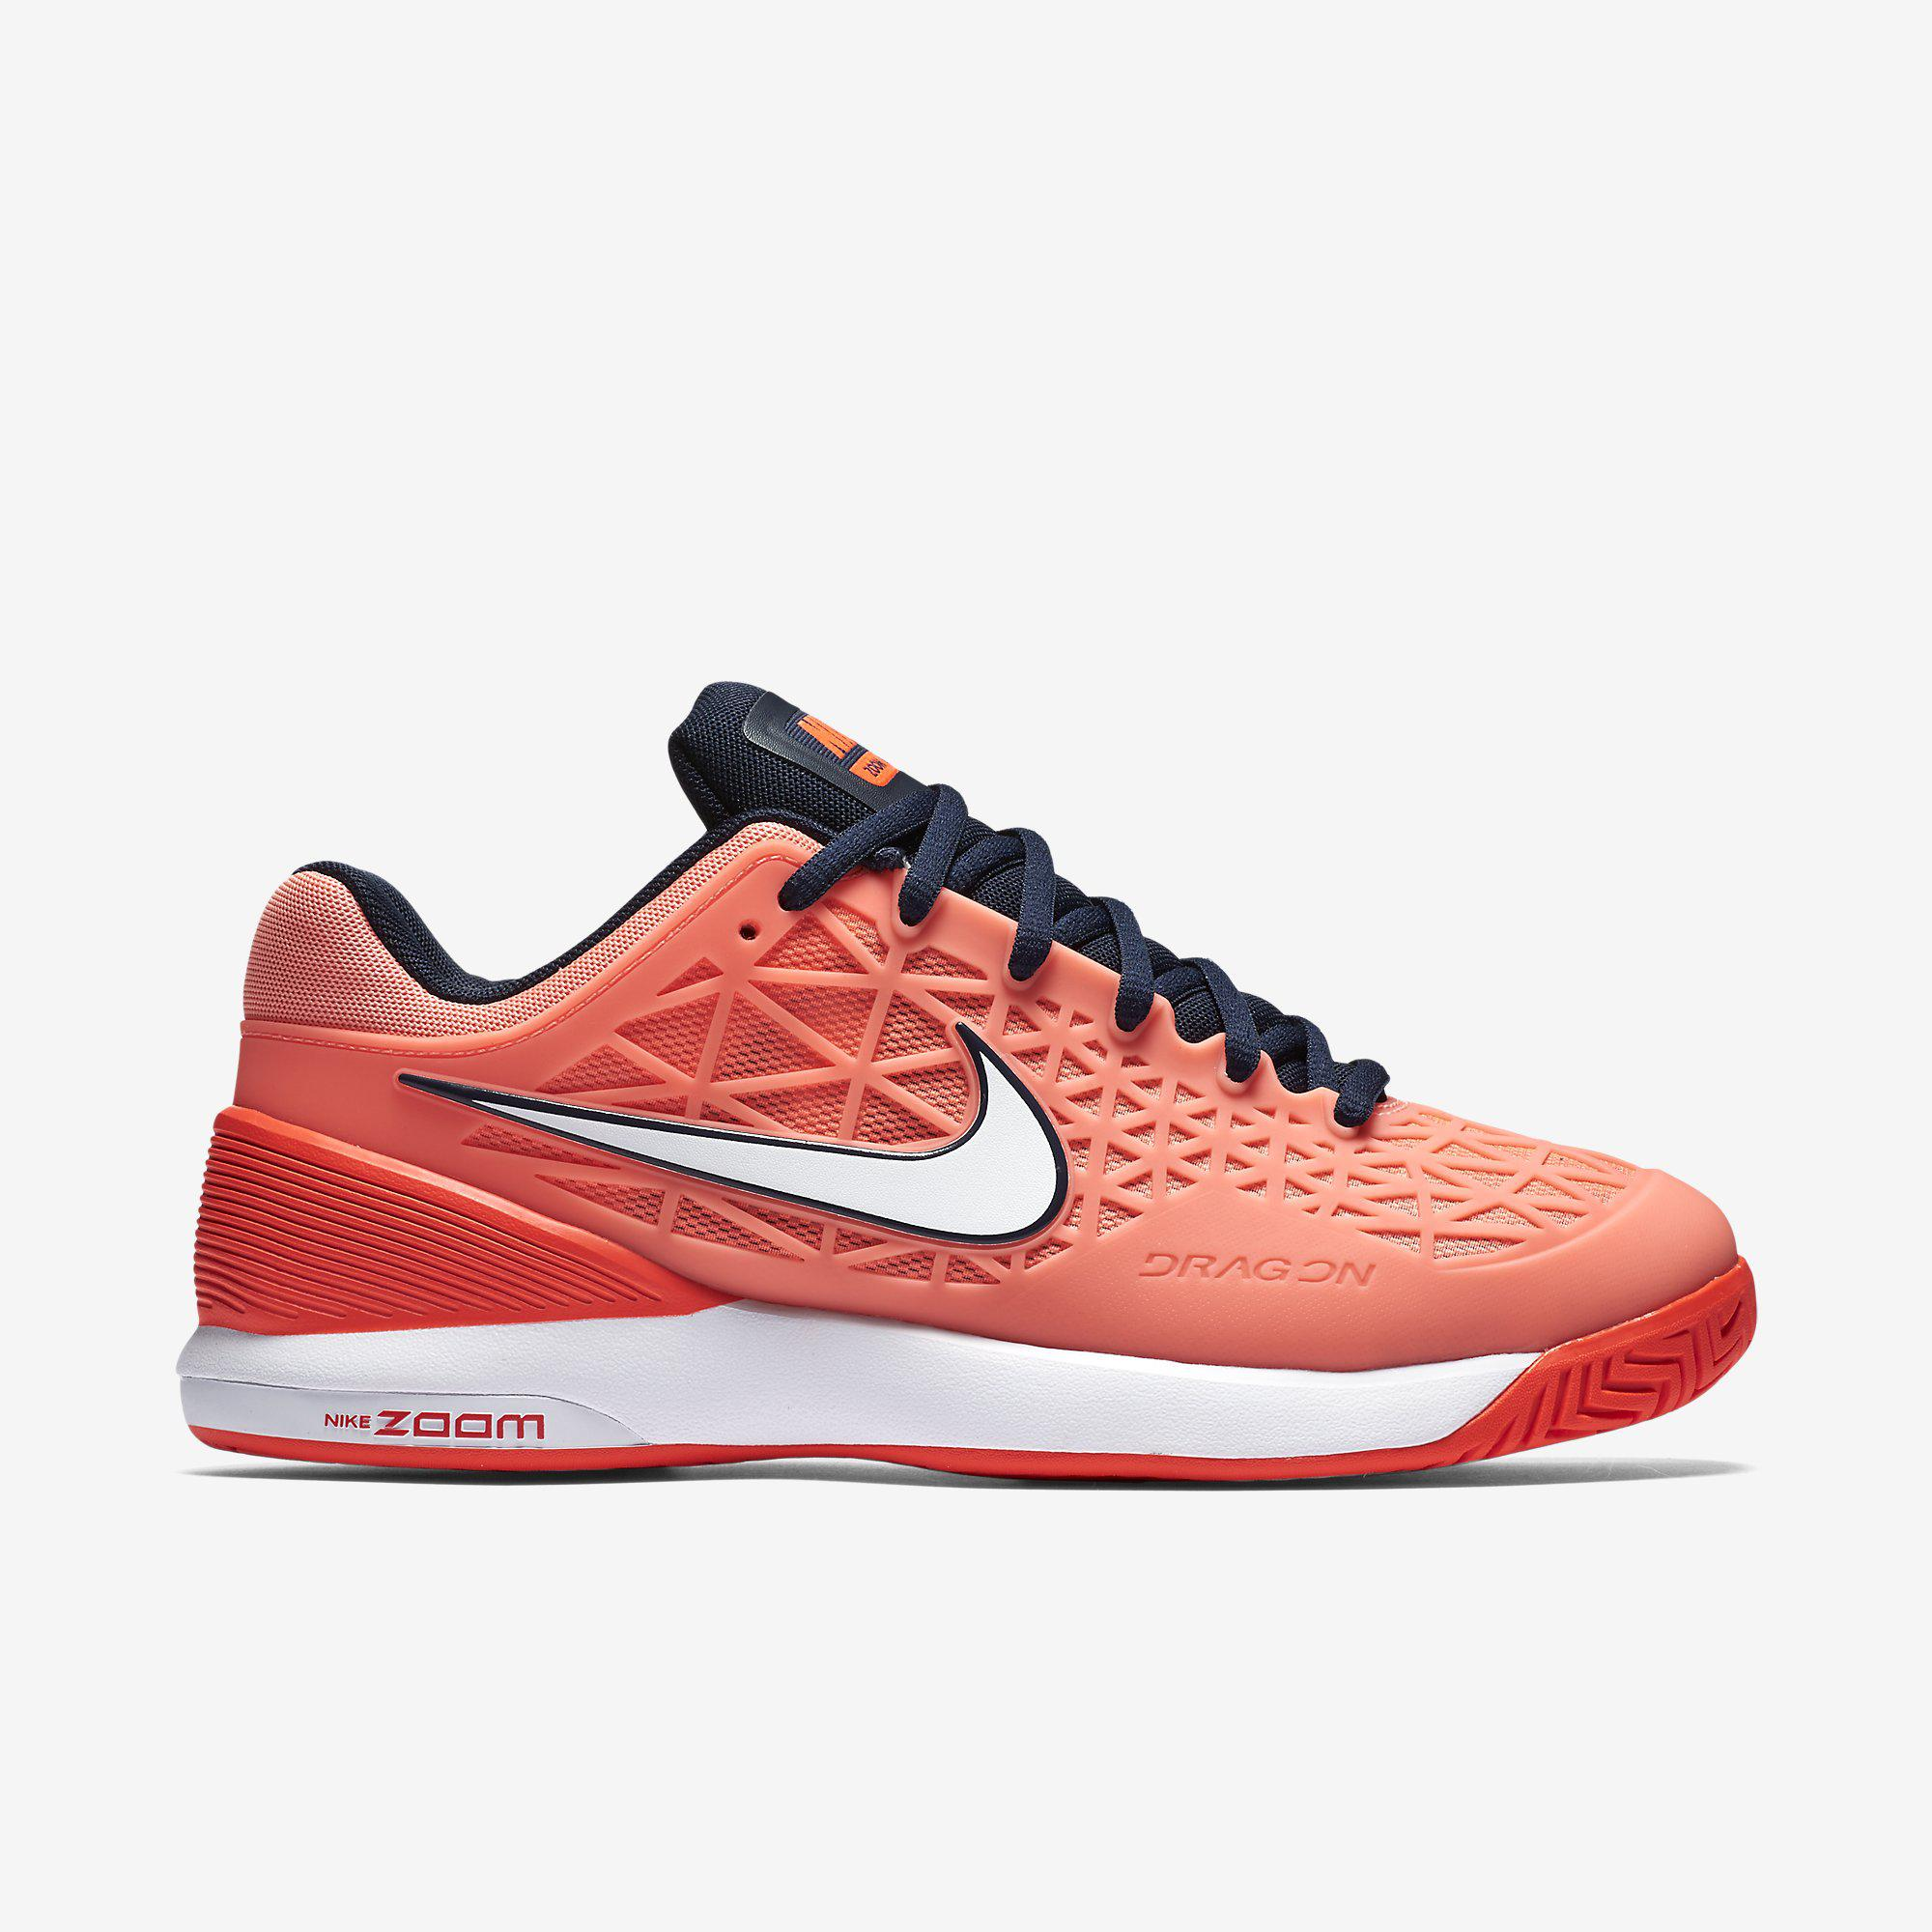 79961e7fa1 ... Nike Womens Zoom Cage 2 Tennis Shoes - Orange Coral  Best Selling Mens  ...